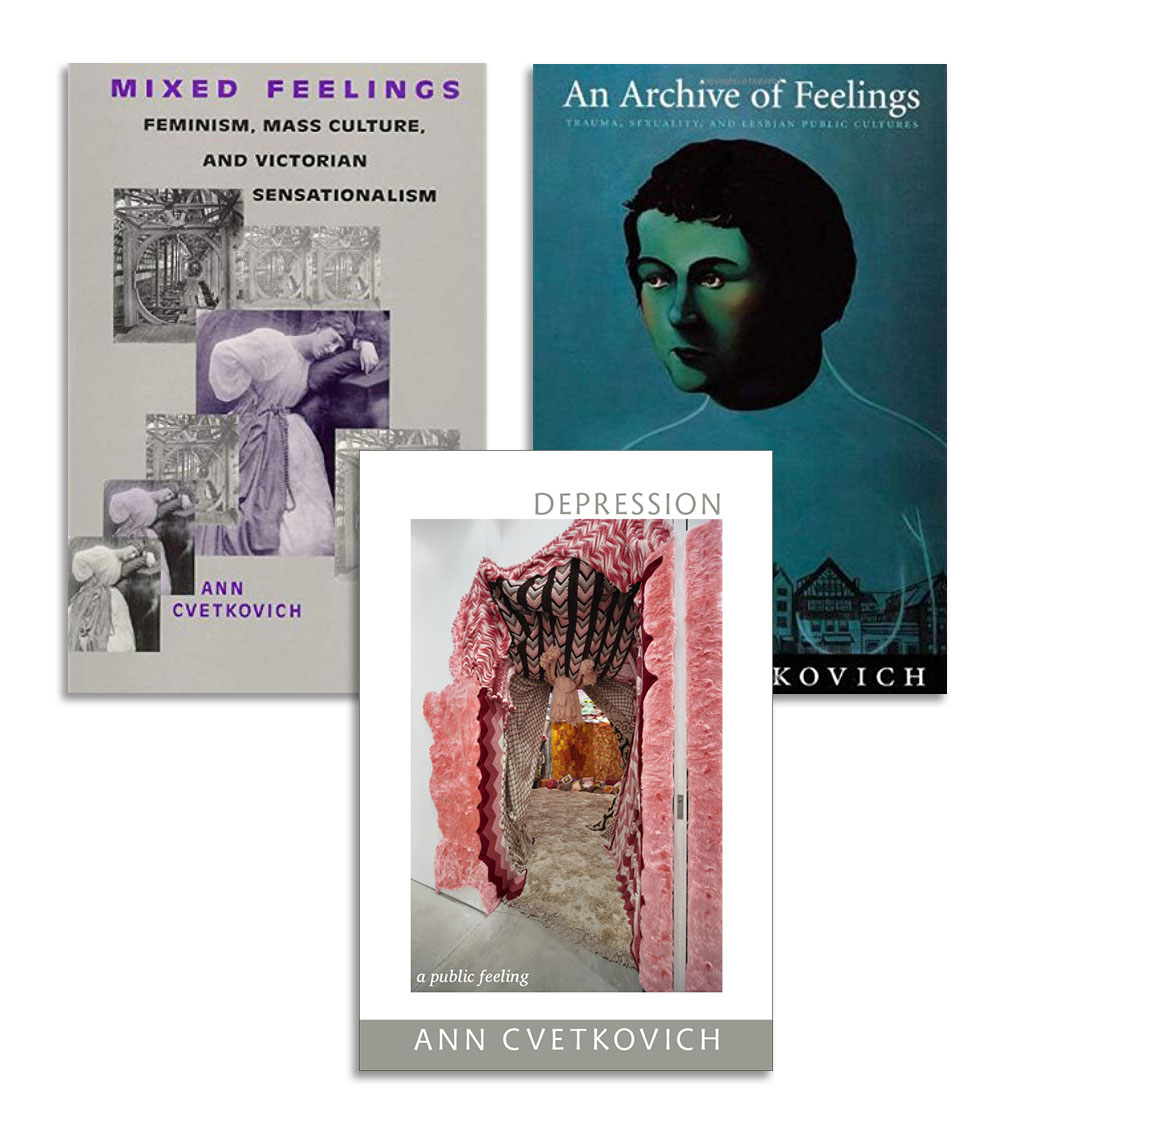 Ann Cvetkovich Book Covers, Cvetkovich's three books: Mixed Feelings: Feminism, Mass Culture, and Victorian Sensationalism (Rutgers, 1992); An Archive of Feelings: Trauma, Sexuality, and Lesbian Public Cultures (Duke, 2003); and Depression: A Public Feeling (Duke, 2012).